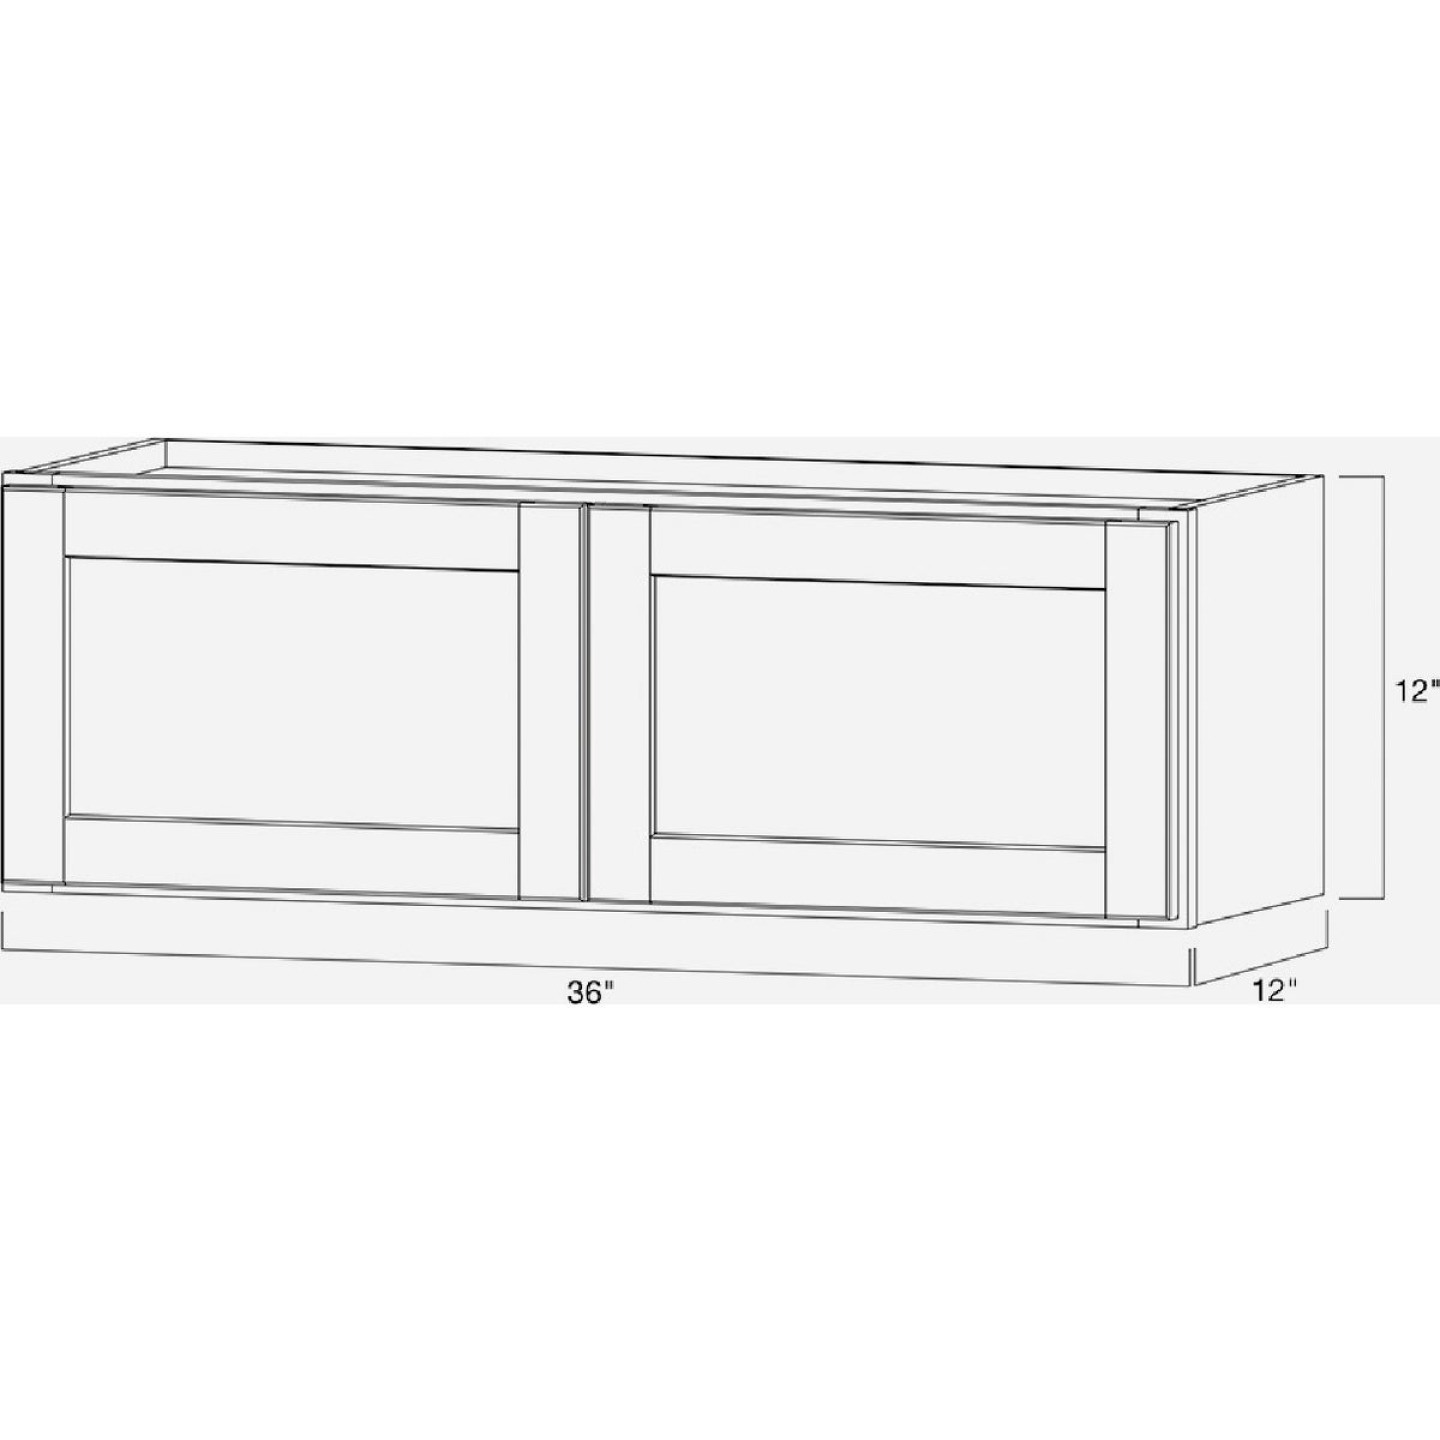 Continental Cabinets Andover Shaker 36 In. W x 12 In. H x 12 In. D White Thermofoil Bridge Wall Kitchen Cabinet Image 4